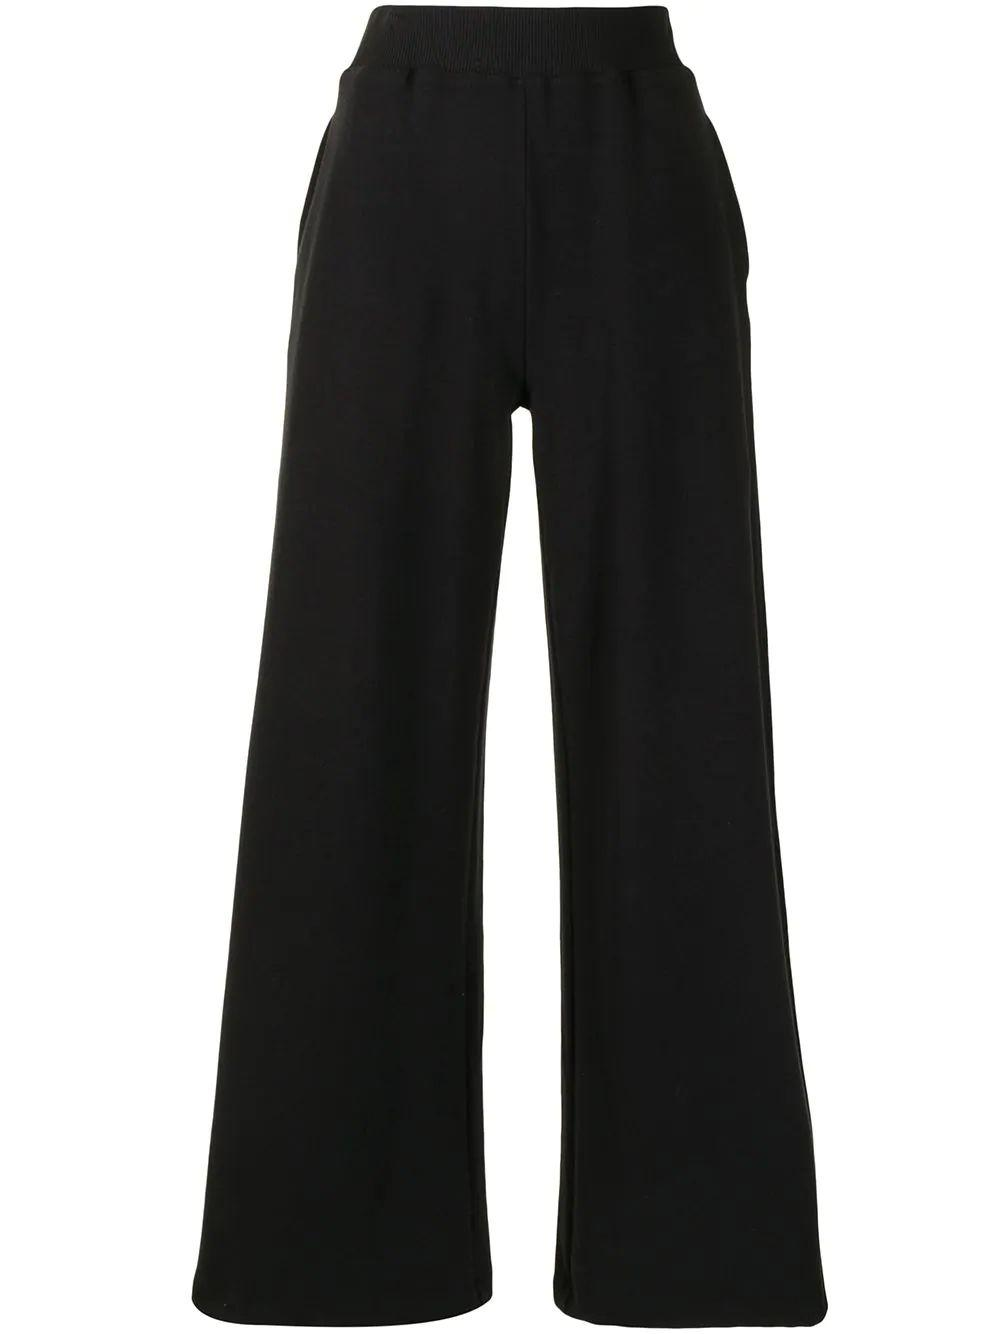 The Campbell Wide Leg Pants